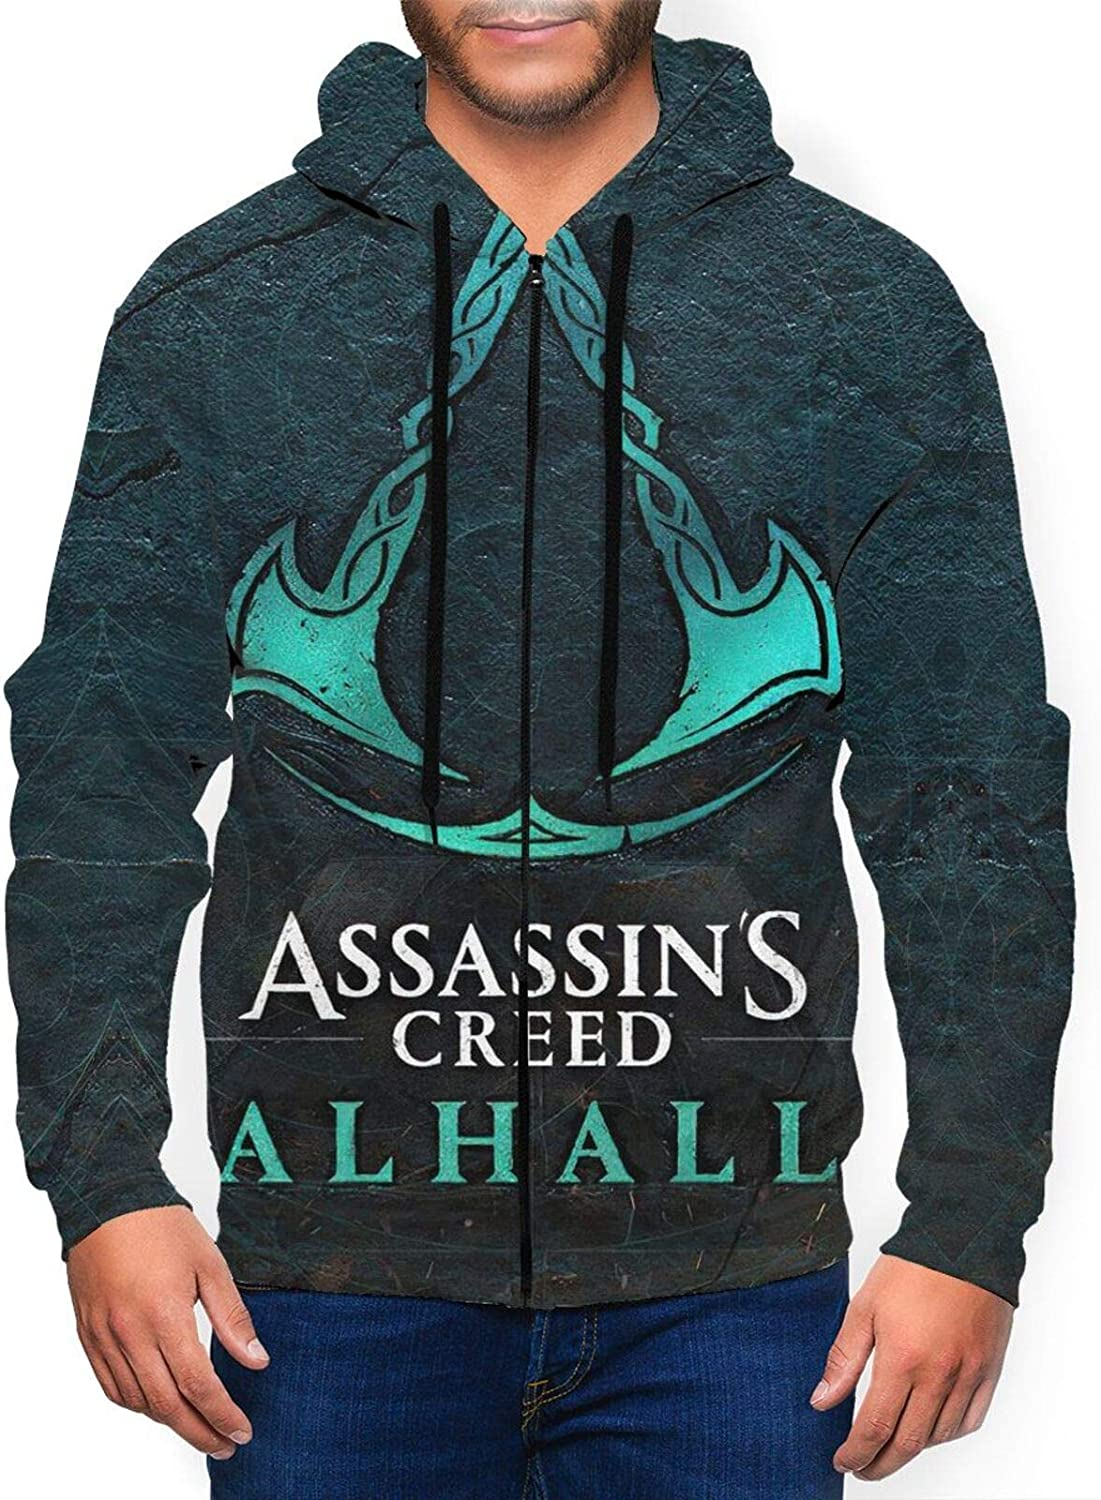 Logo-Ass-ass-in Men'S Hoodie Full Sweatshir Max 44% OFF Pullover Zip Year-end annual account Sweater